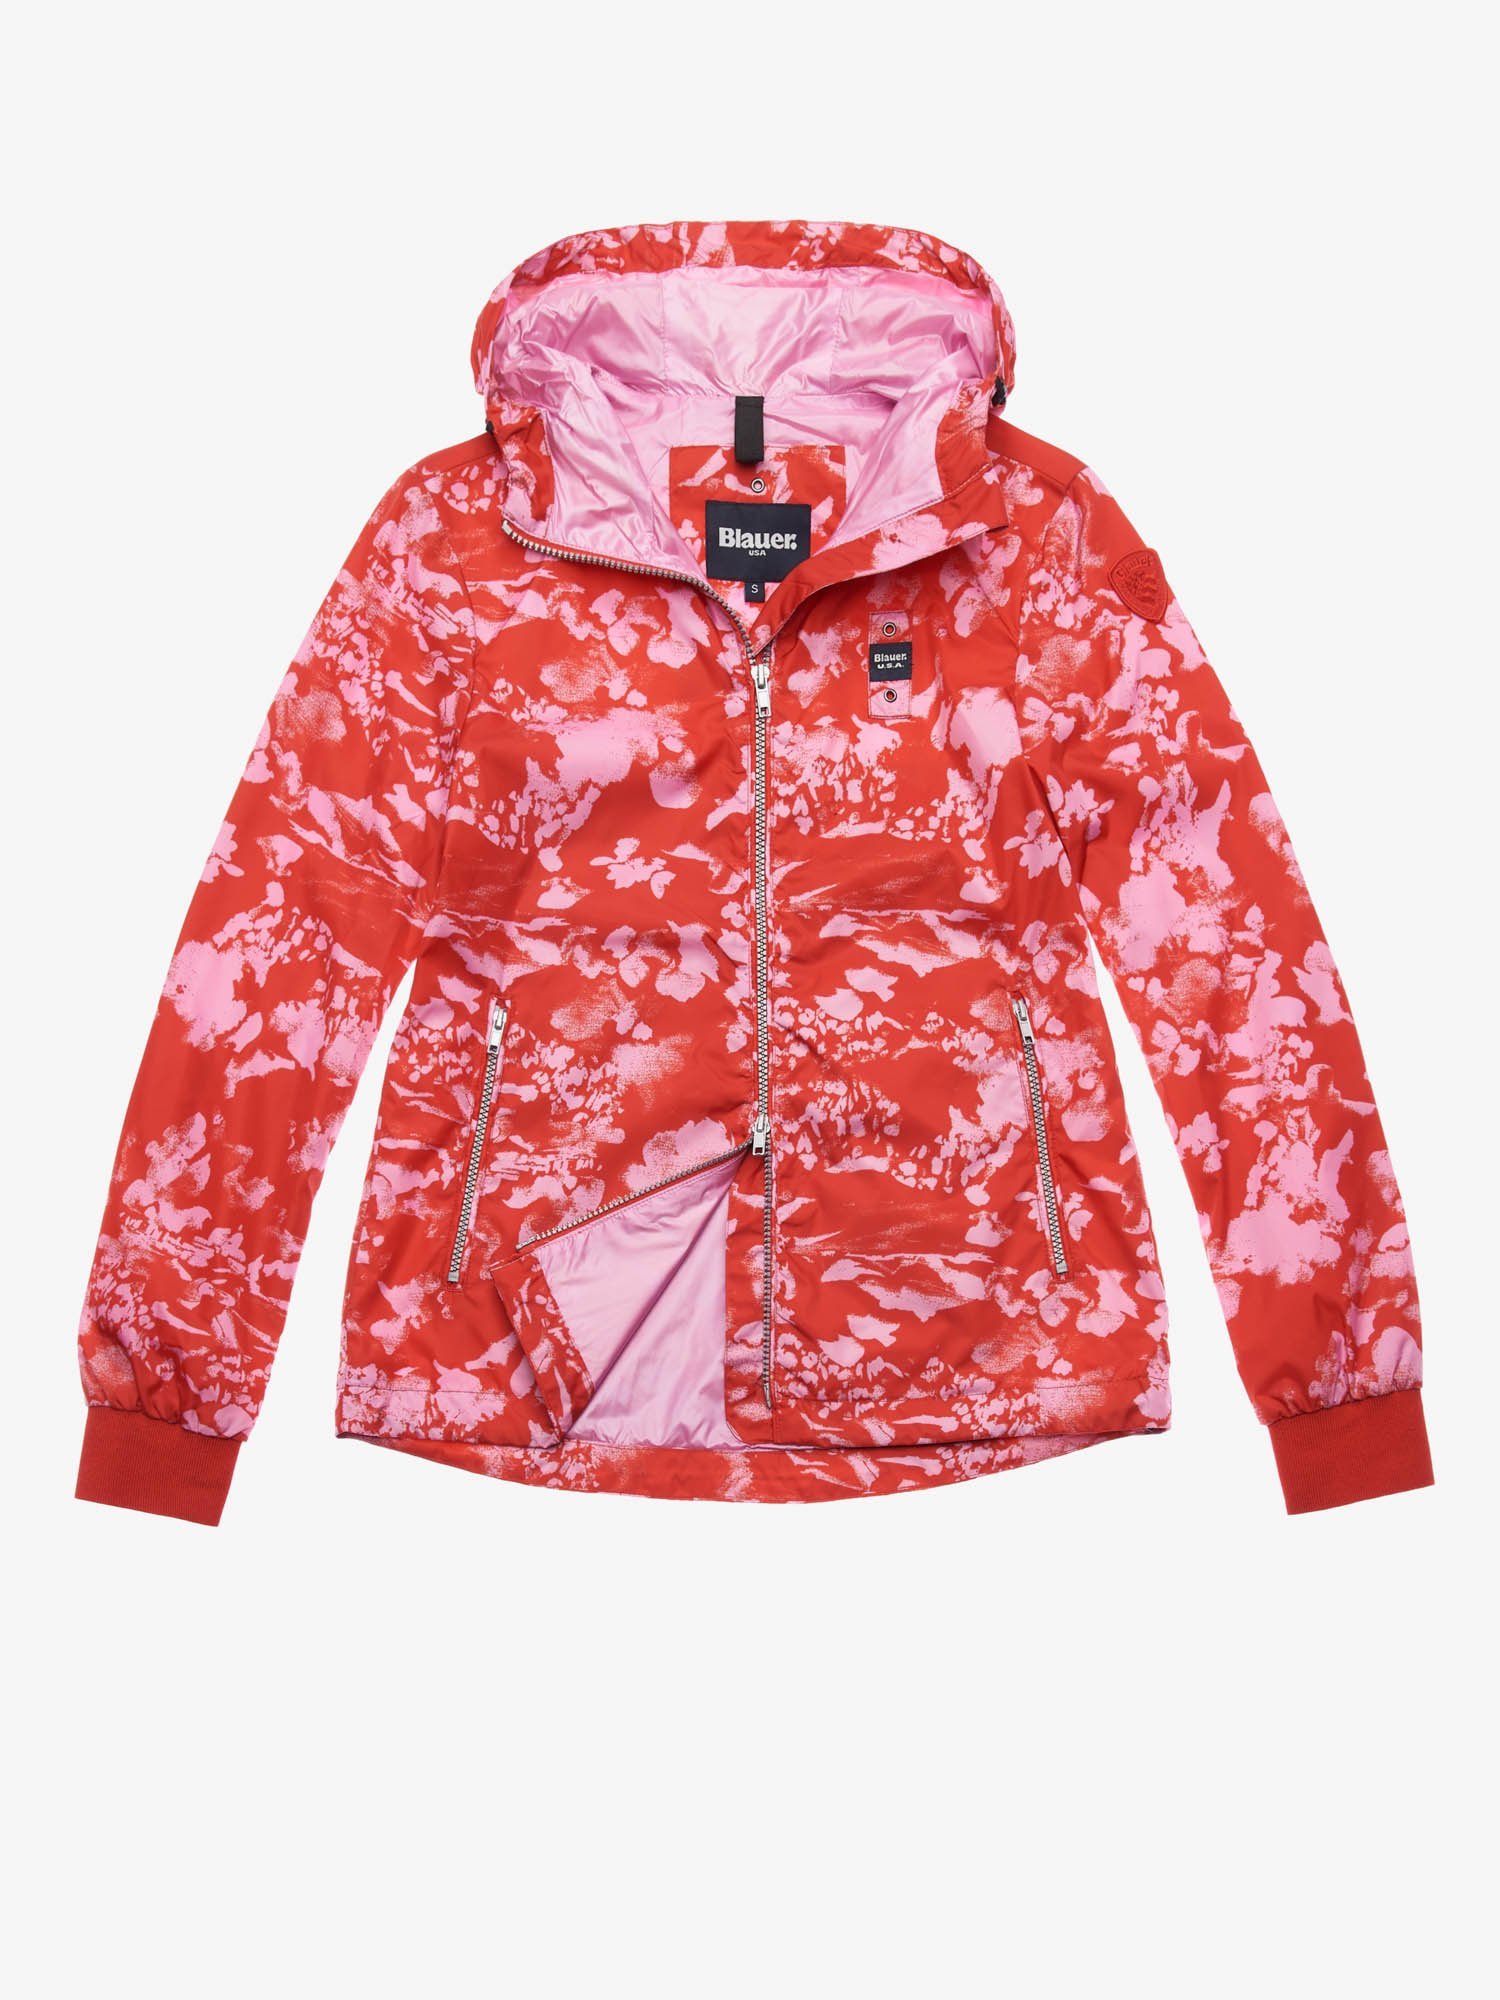 WRIGHT FLORAL CAMOUFLAGE JACKET - Blauer